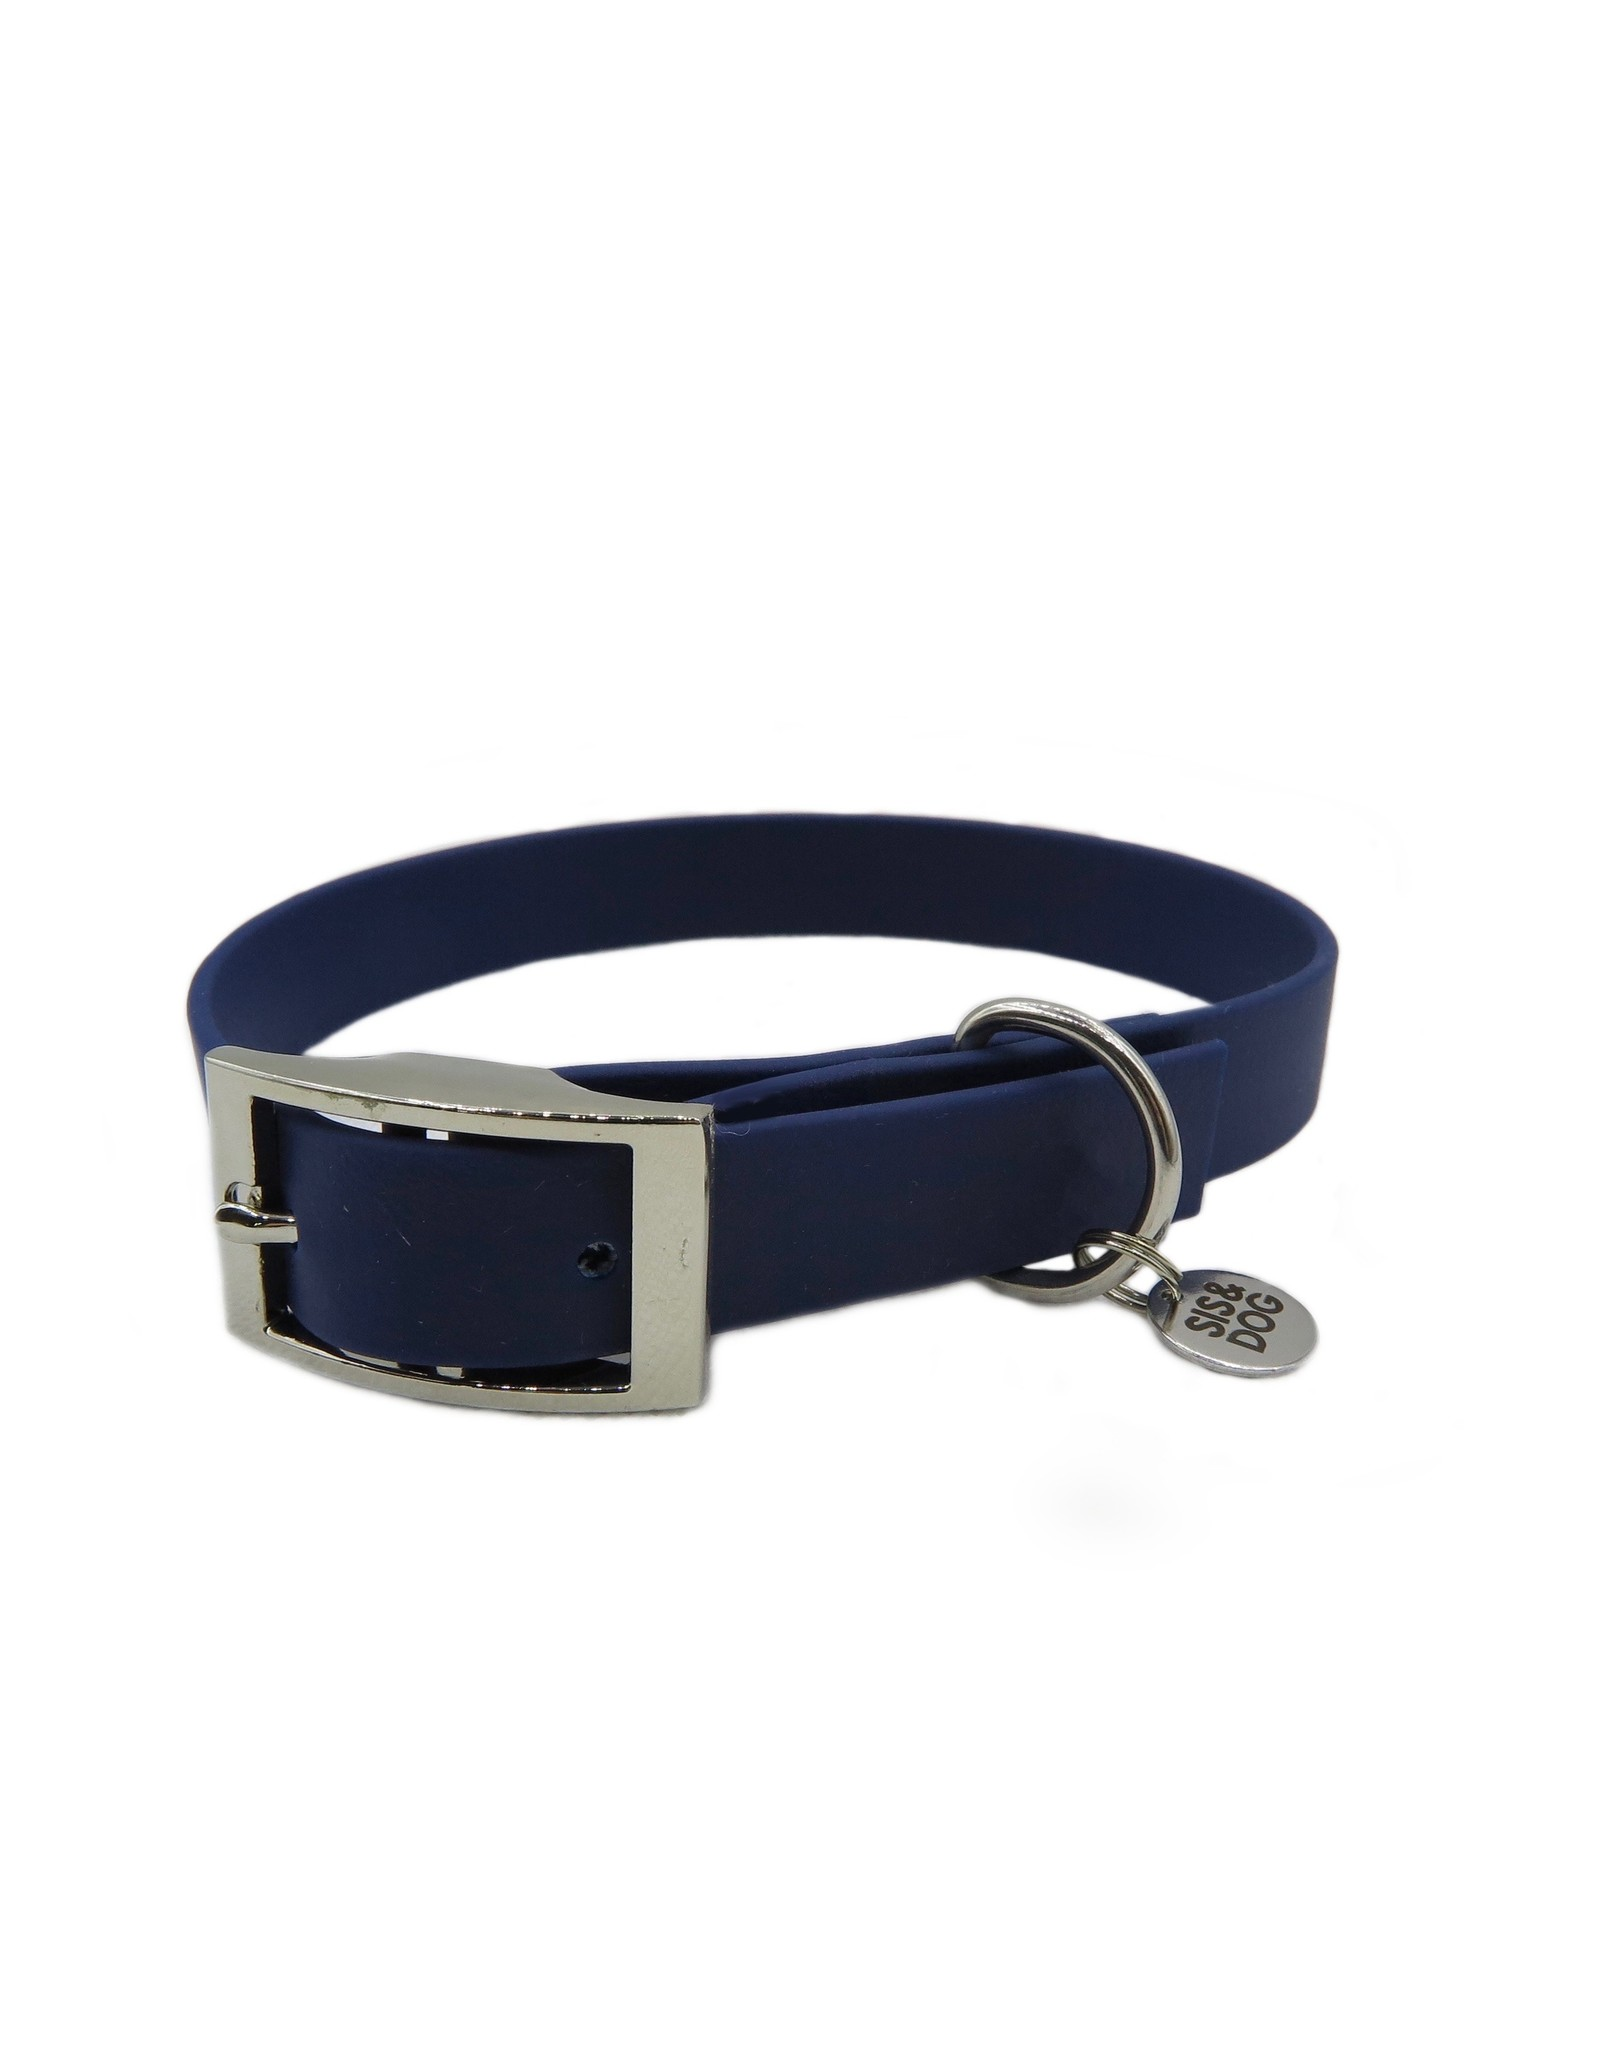 Collar dark blue wide